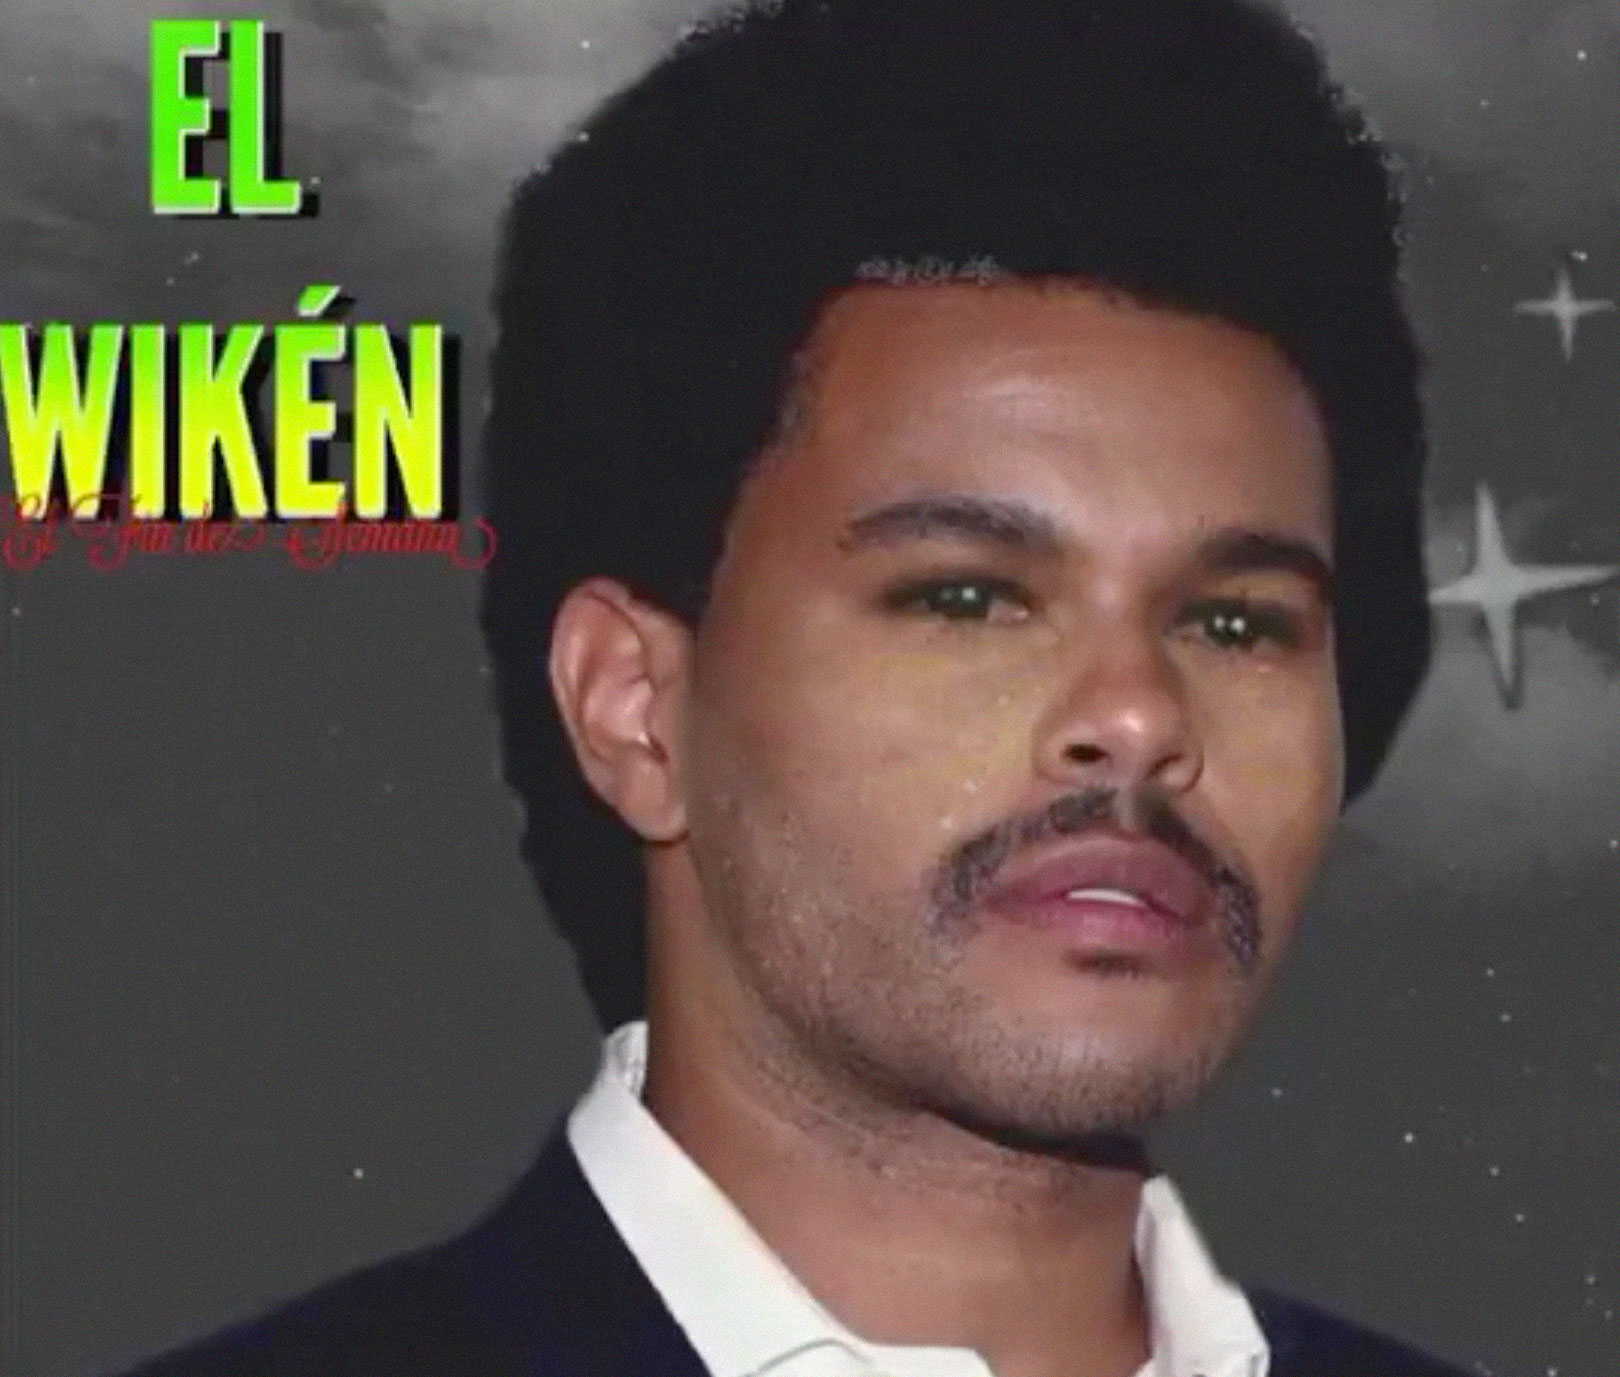 """The Wikén"", el cover de bachata de ""Often"" que está enloqueciendo a Internet y al mismo The Weeknd"